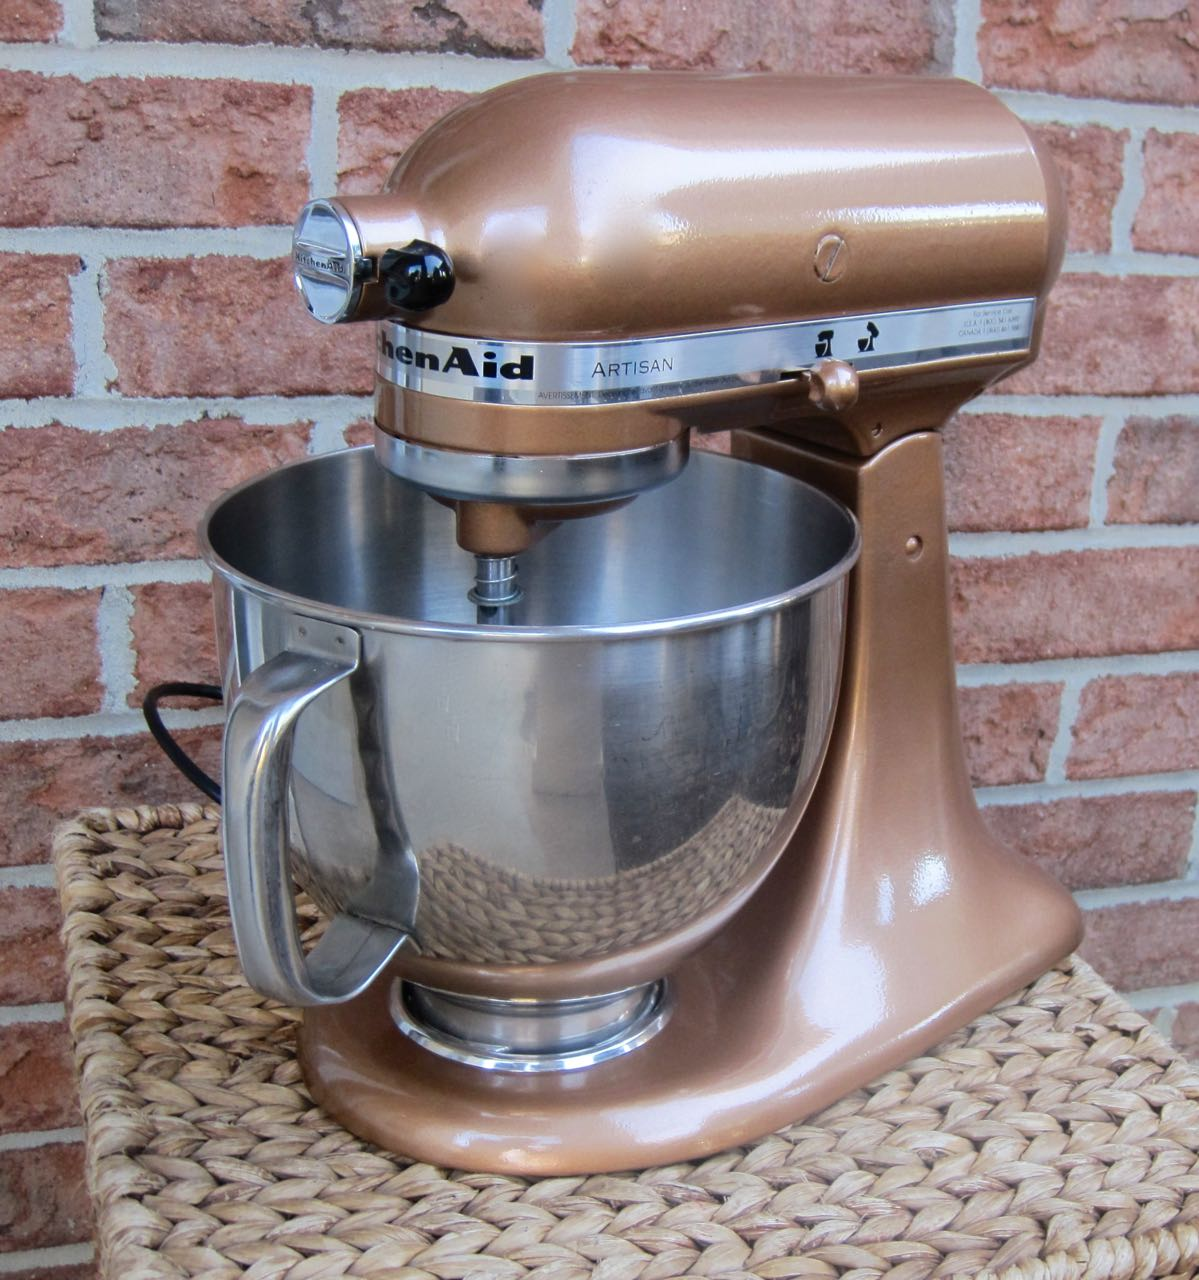 Spray Paint Your Kitchenaid Mixer Hammered Copper Finish